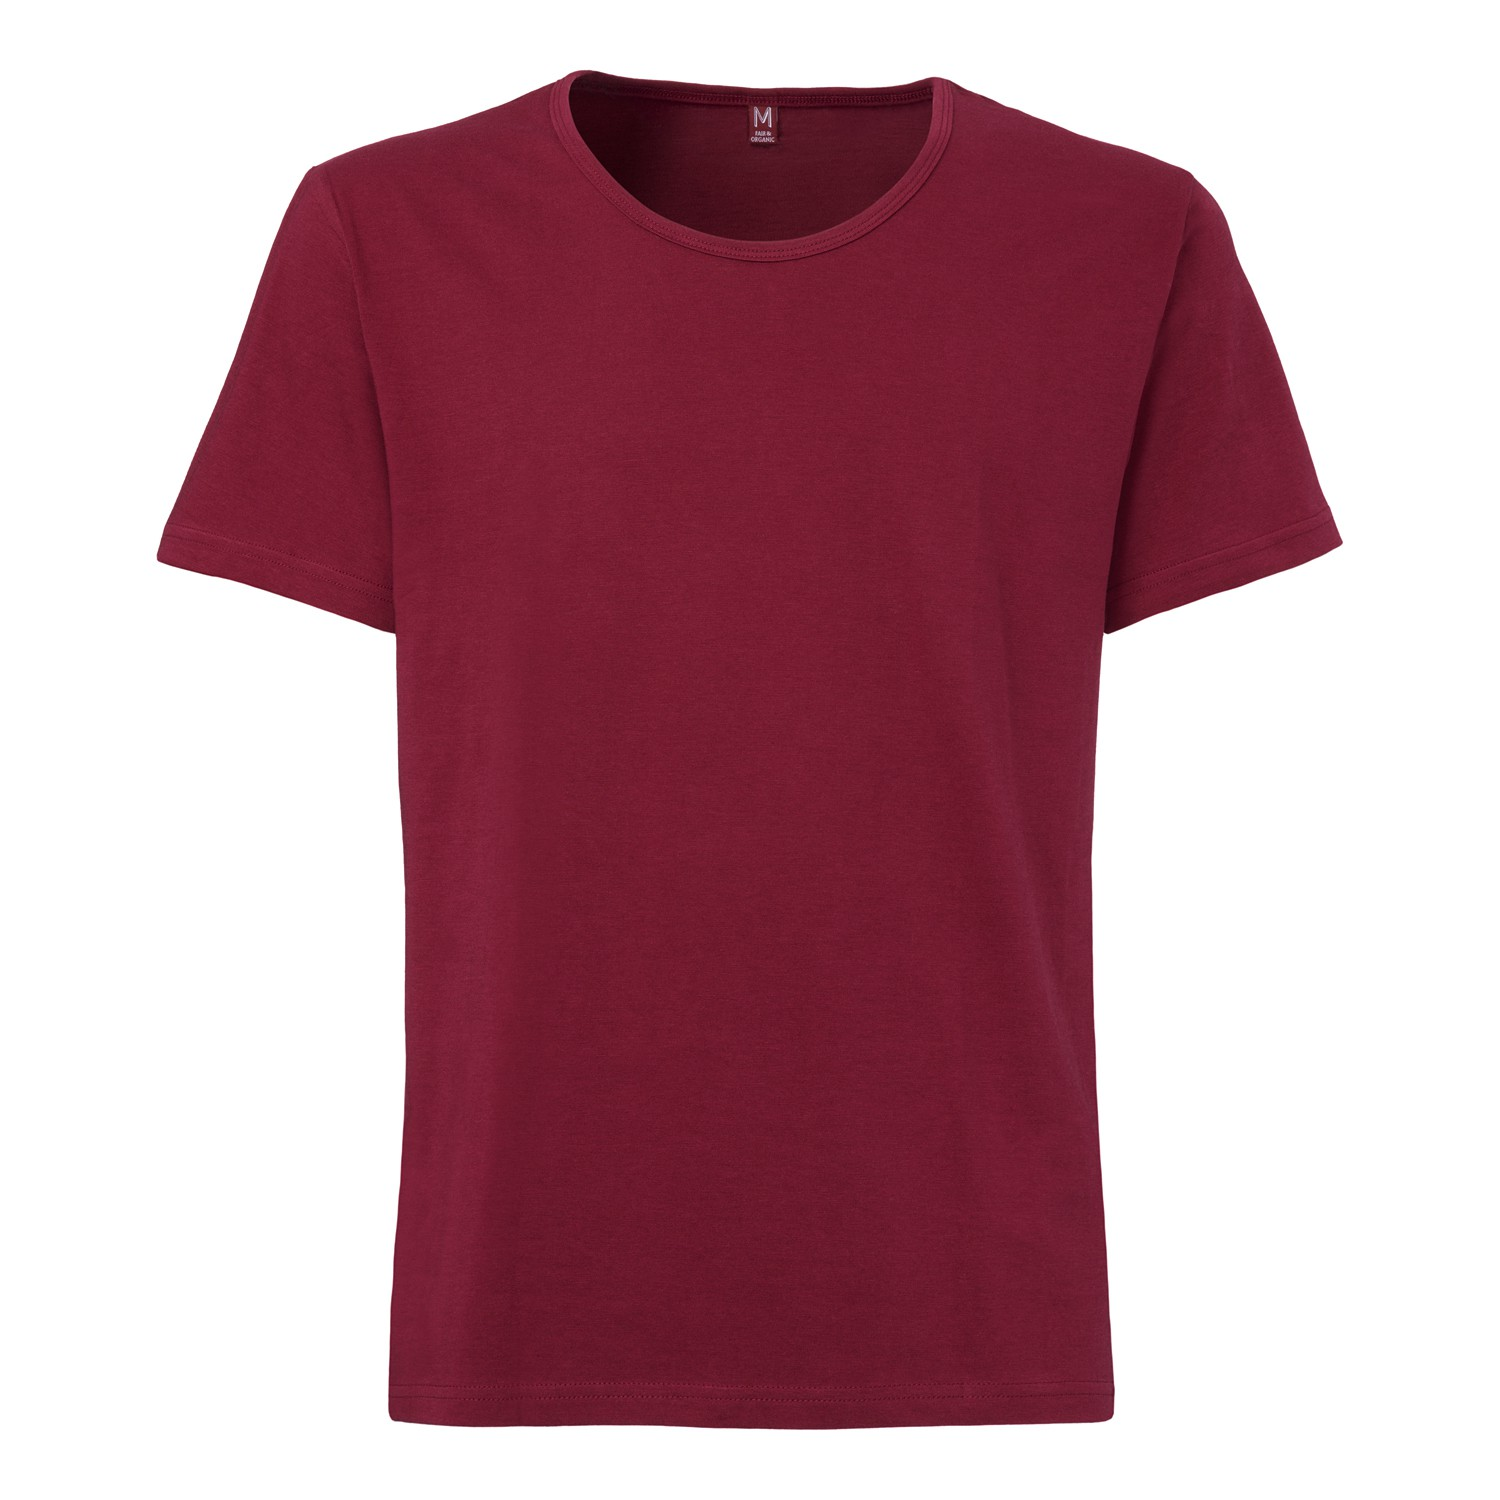 Tt19 wide neck t shirt ruby fairtrade gots sale man Fair trade plain t shirts